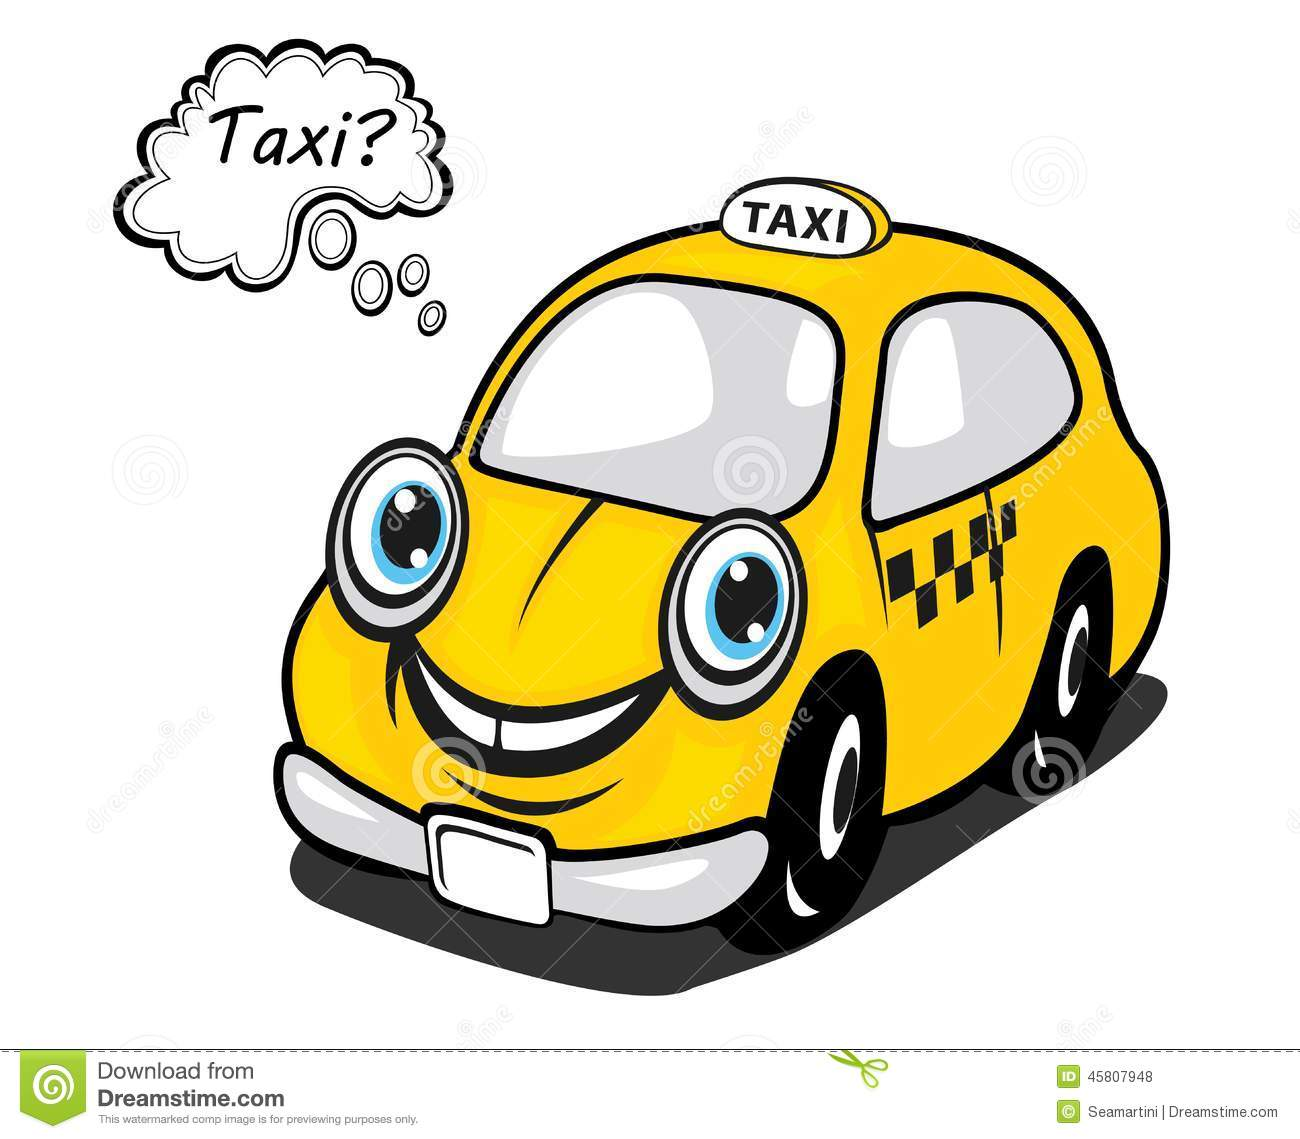 Royalty Free Stock Photos: Cute yellow cartoon taxi with a thought ... Smiling Dog And Cat